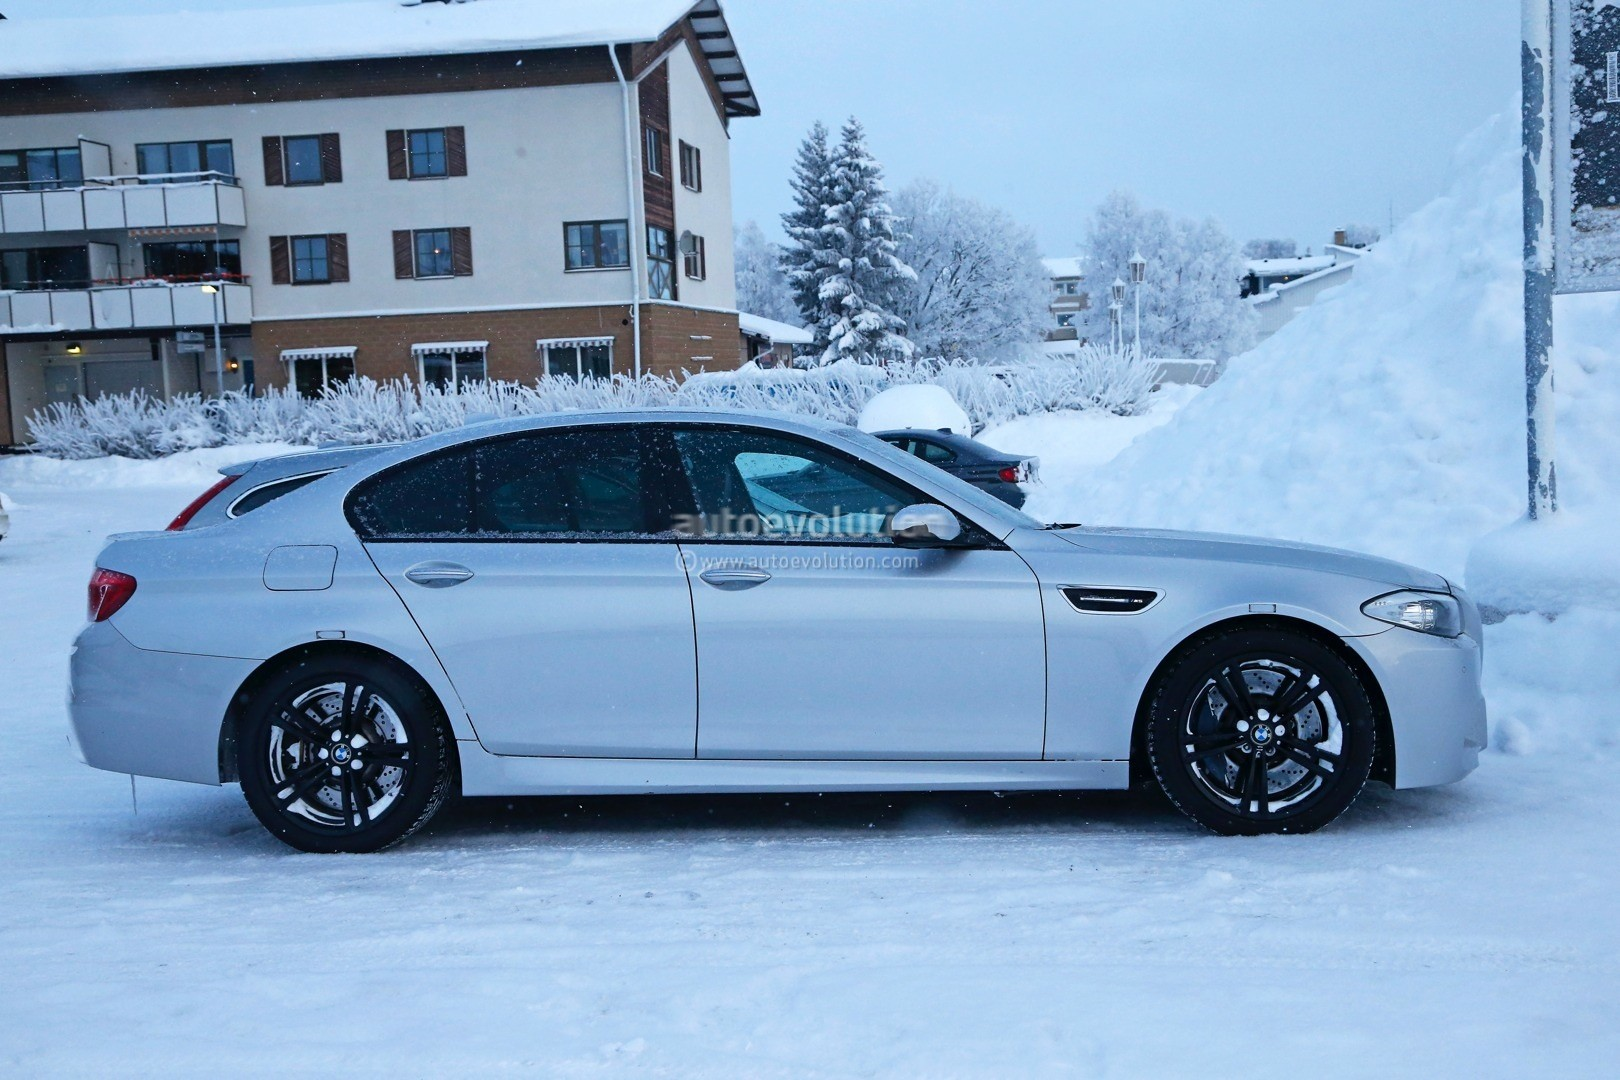 Worksheet. AllWheel Drive BMW M5 Mule Spied Testing in the Snow for the